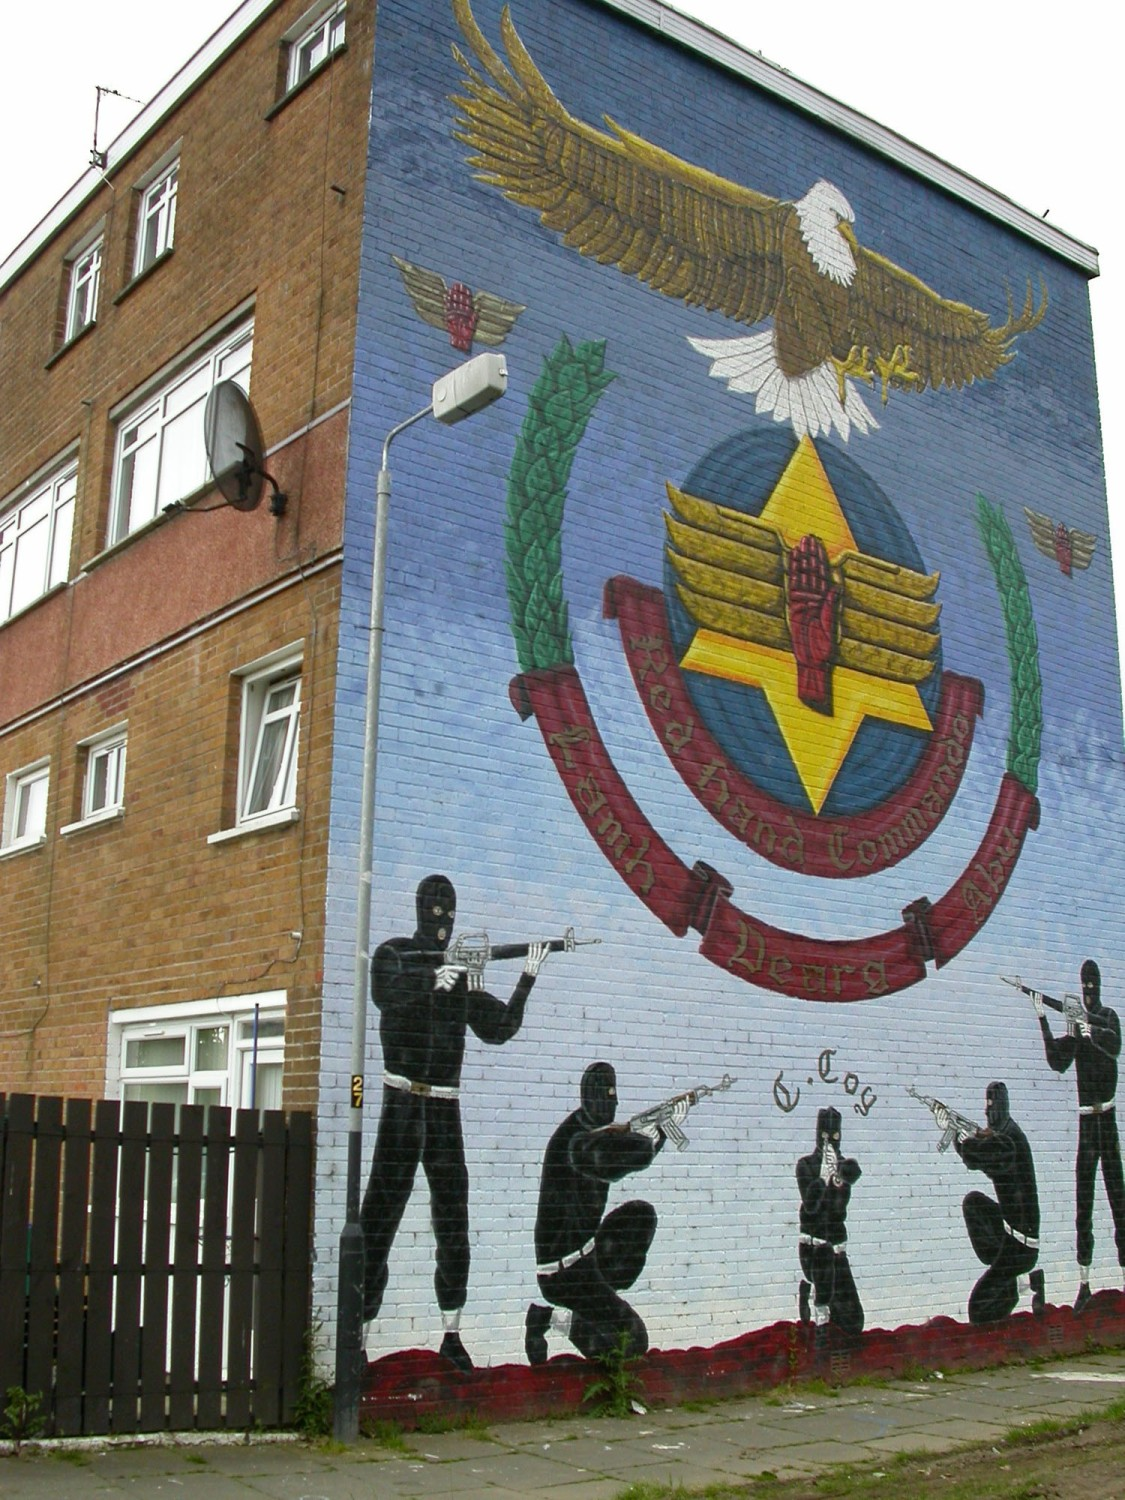 Northern-Ireland-Belfast-The-Troubles-Mural-Loyalist